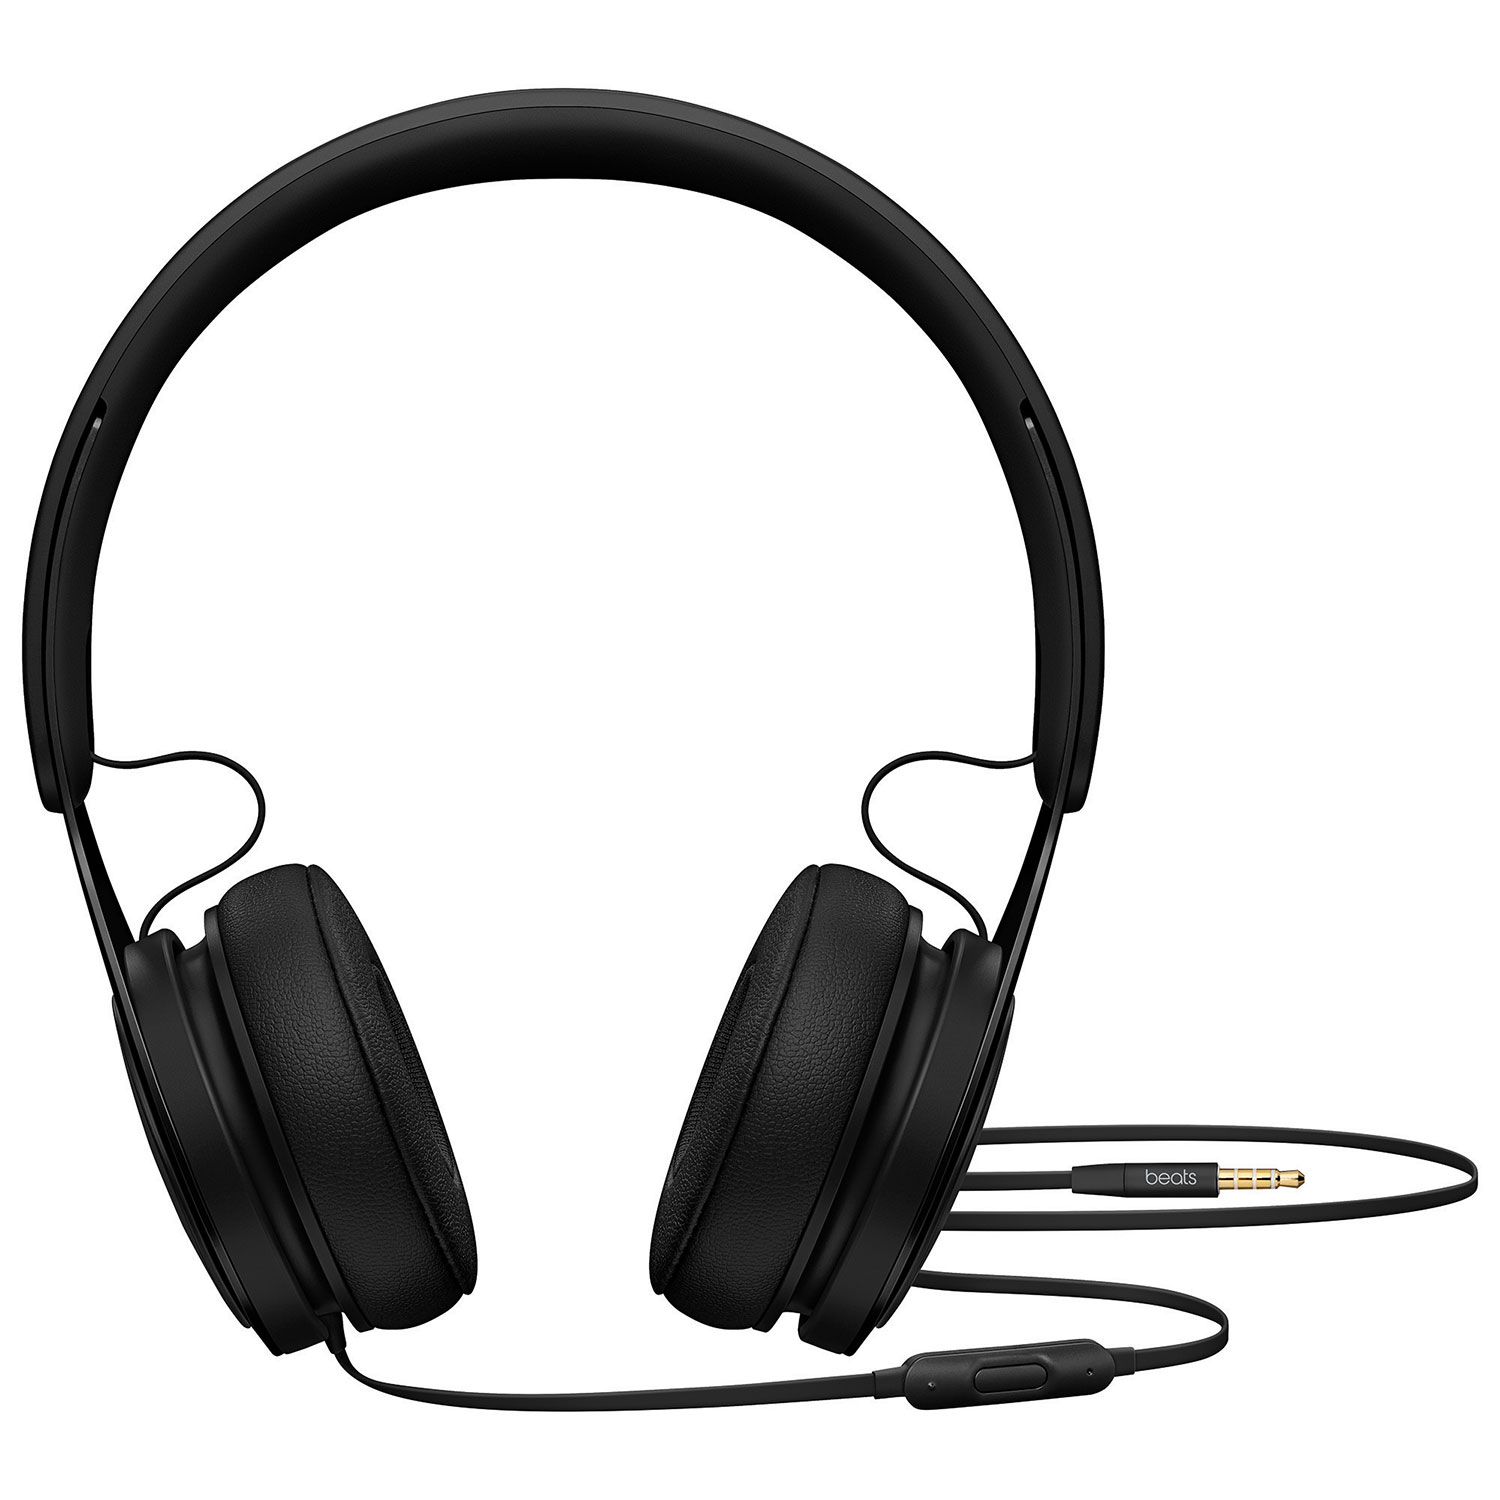 a1372d81f9a Beats by Dr. Dre EP On- Ear Sound Isolating Headphones with Mic - Black    On-Ear Headphones - Best Buy Canada